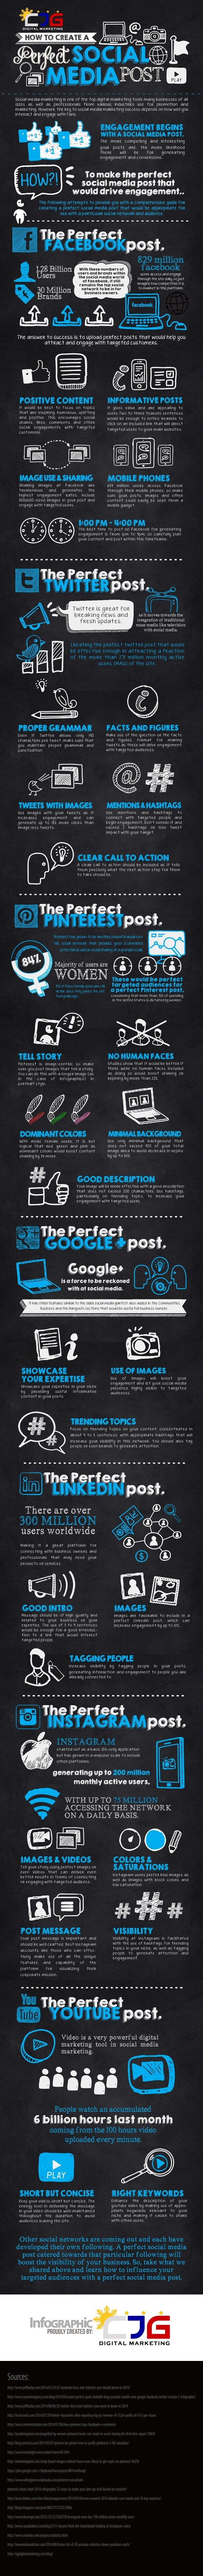 Facebook, Twitter, Pinterest, Instagram: How to Write the Perfect Post!